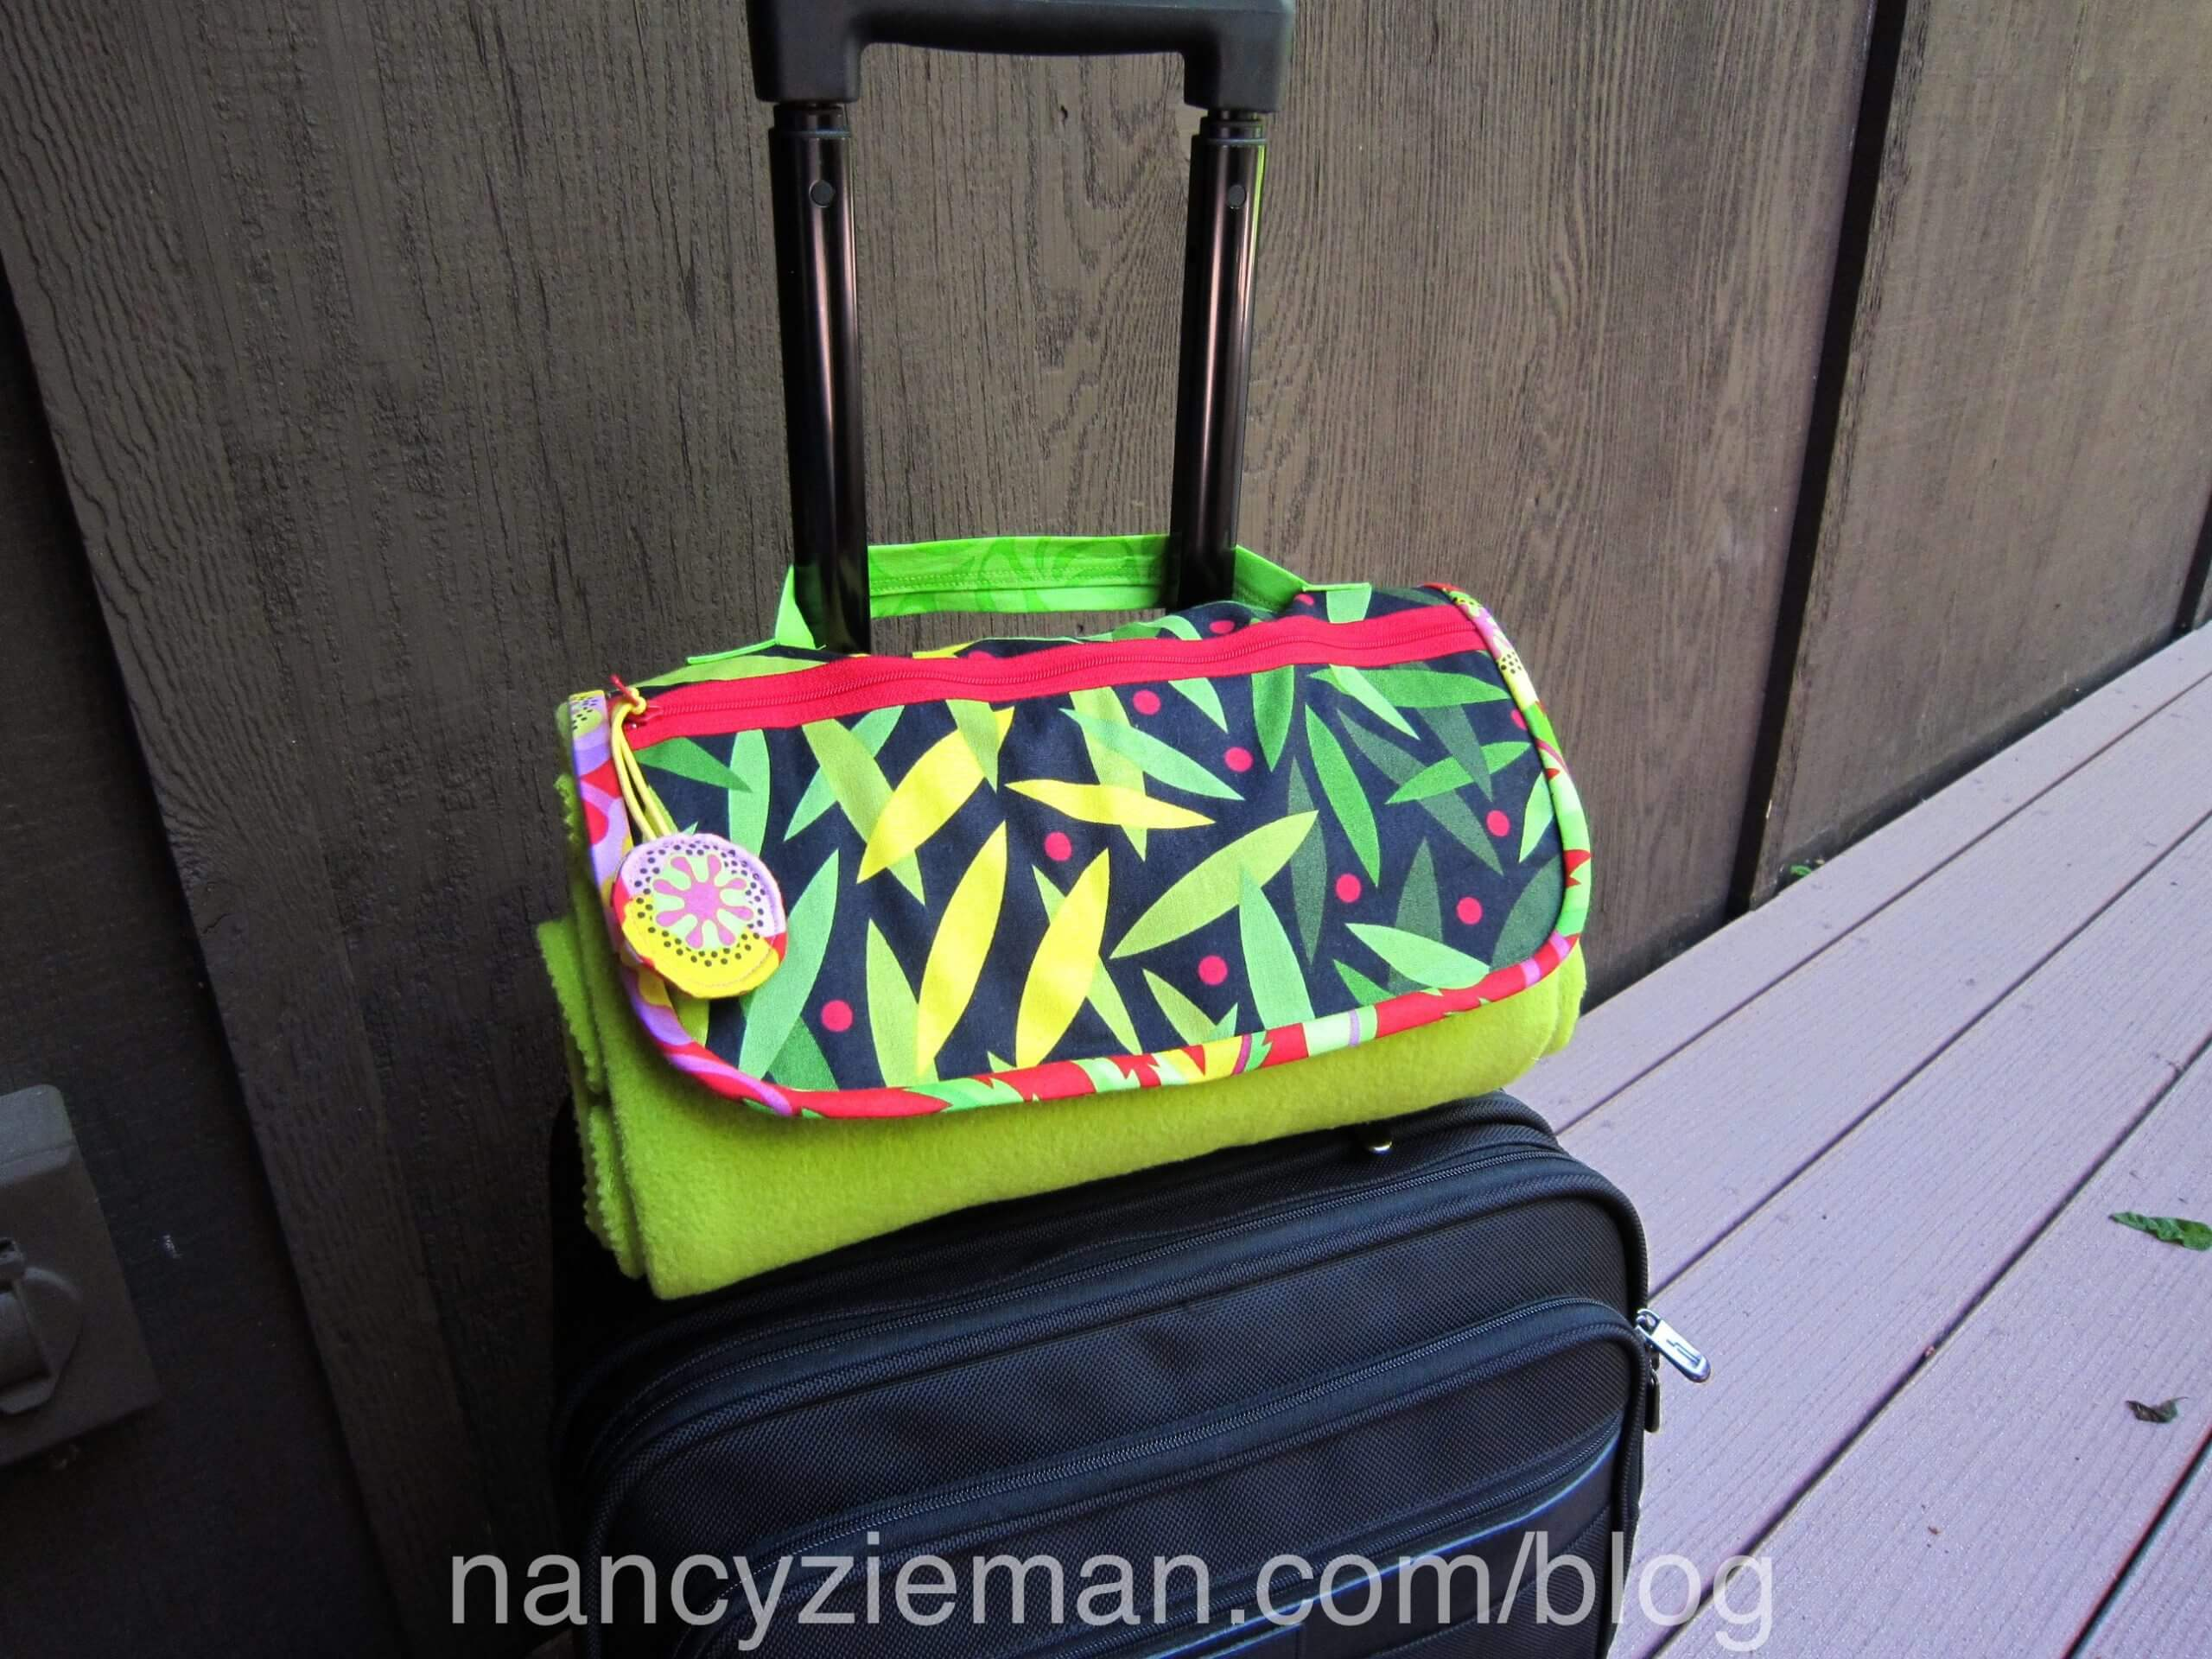 Travel Gear Made Easy by Mary Mulari on Sewing With Nancy